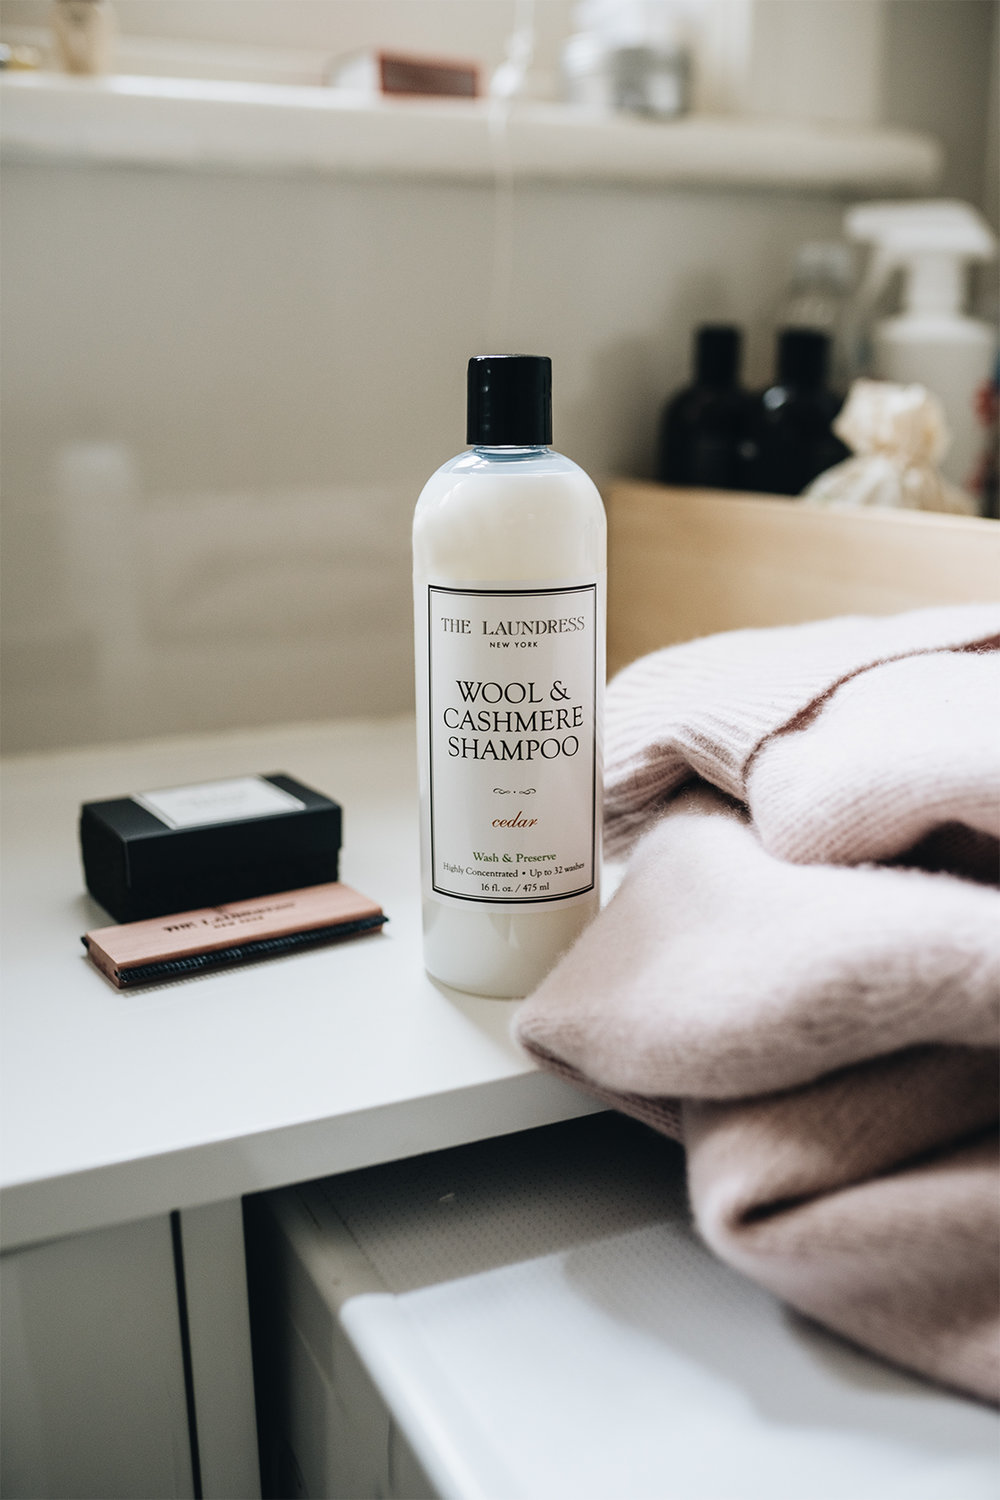 The Laundress Wool & Cashmere Shampoo   This The Laundress shampoo is specially formulated for delicate natural fibers such as wool, cashmere, merino, and mohair. The scent is a blend of sandalwood, orange, rose, and cedar.